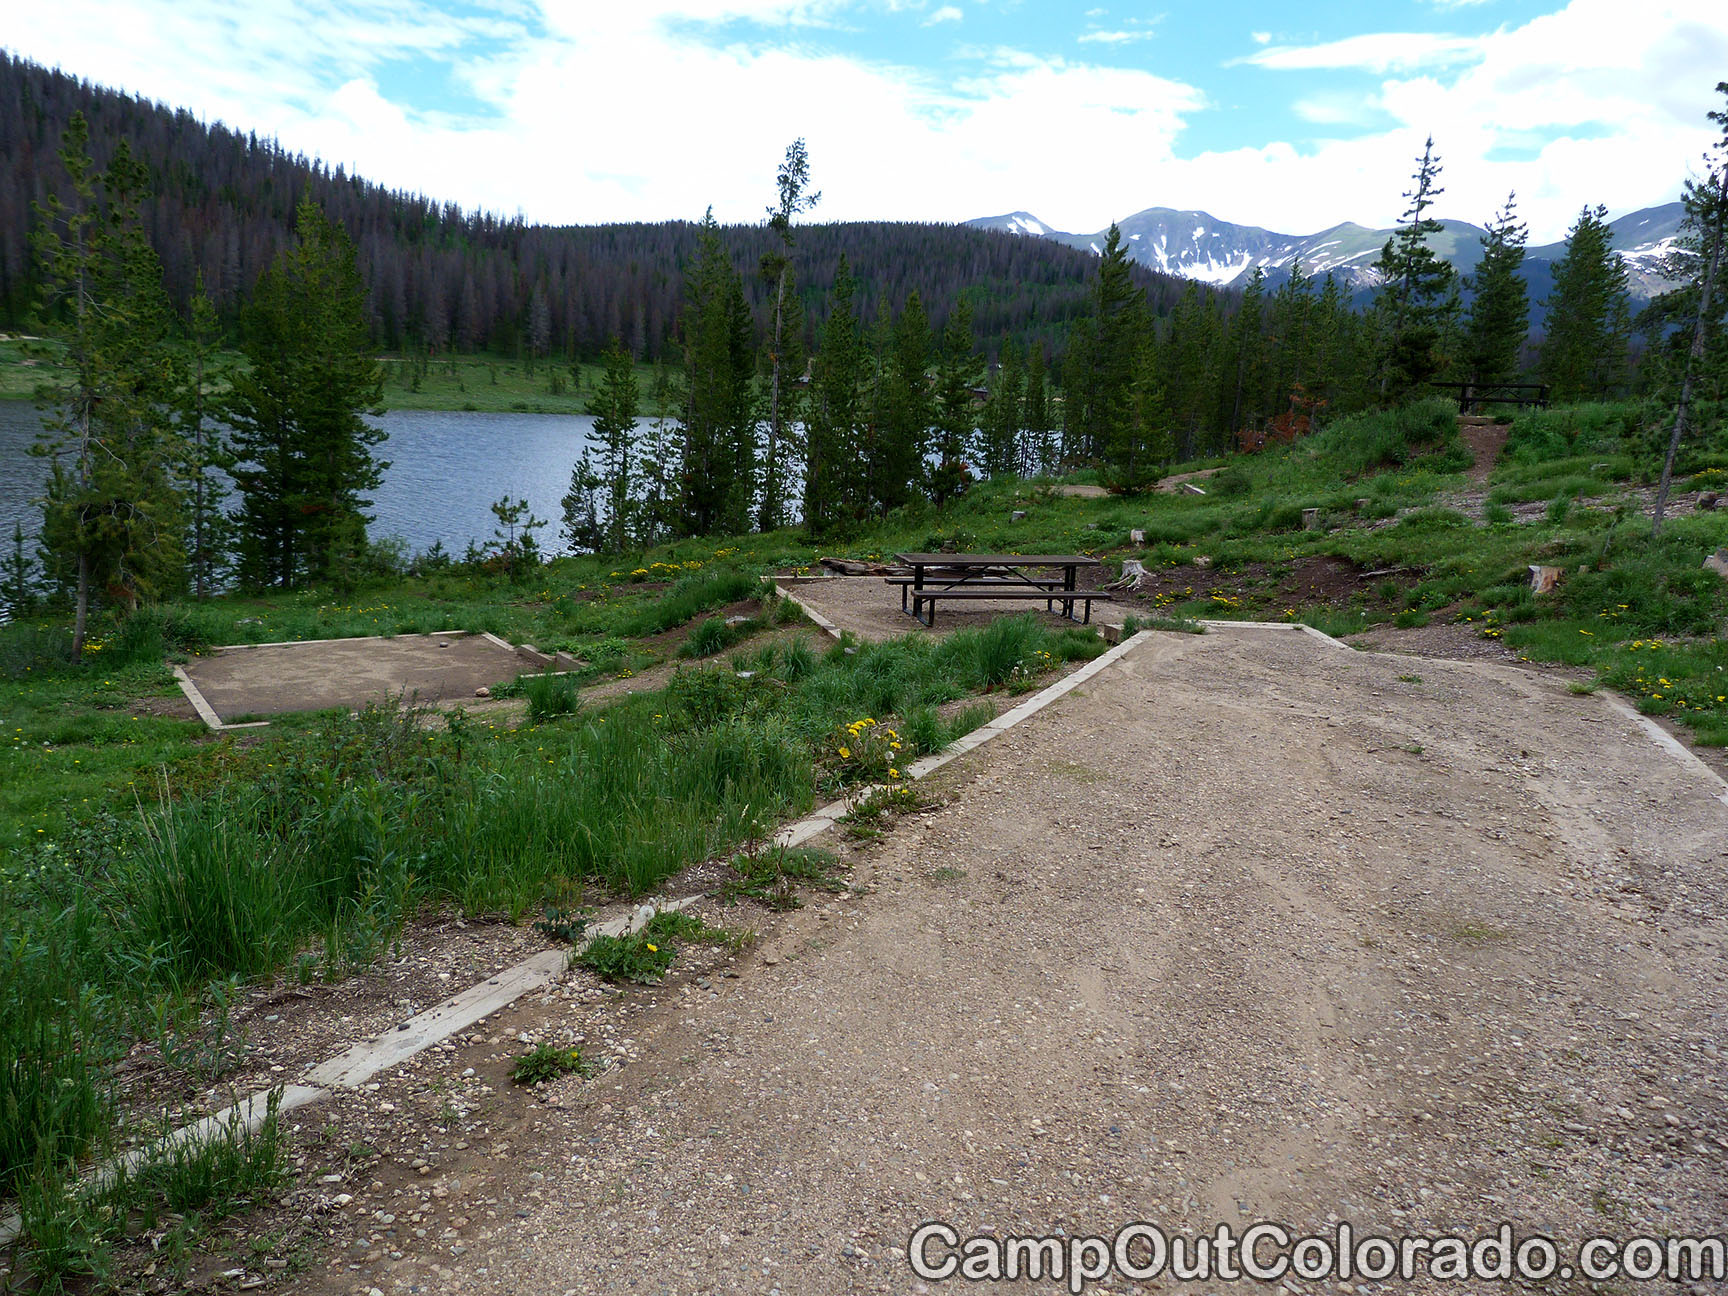 Campoutcolorado-north-michigan-reservoir-campground-tiered-camping